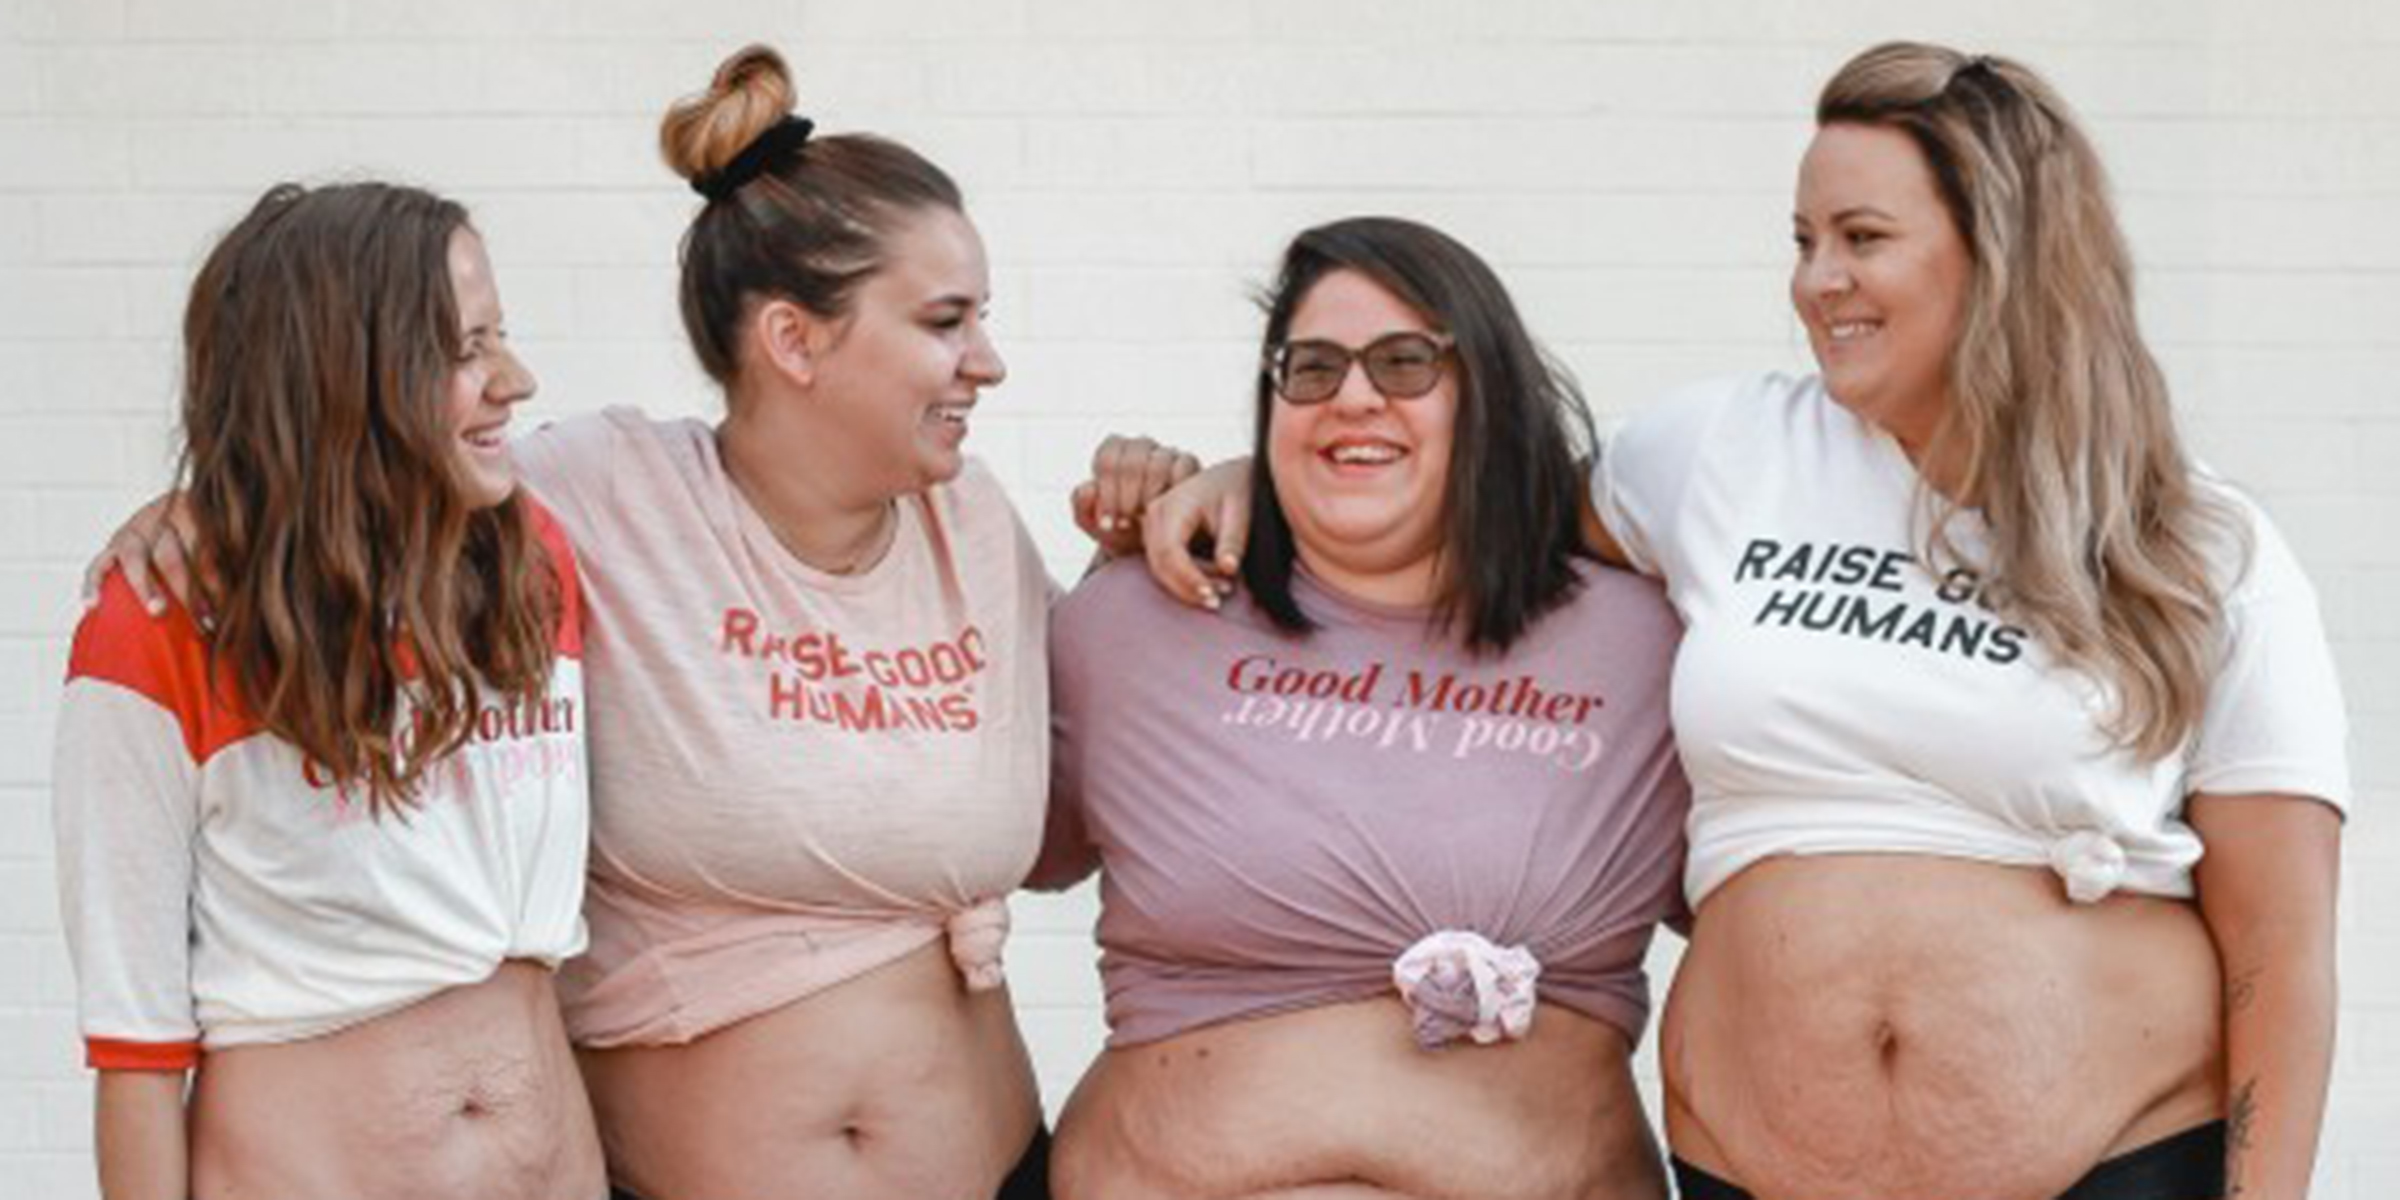 'All body types are beautiful': How these 4 women are changing the body image narrative